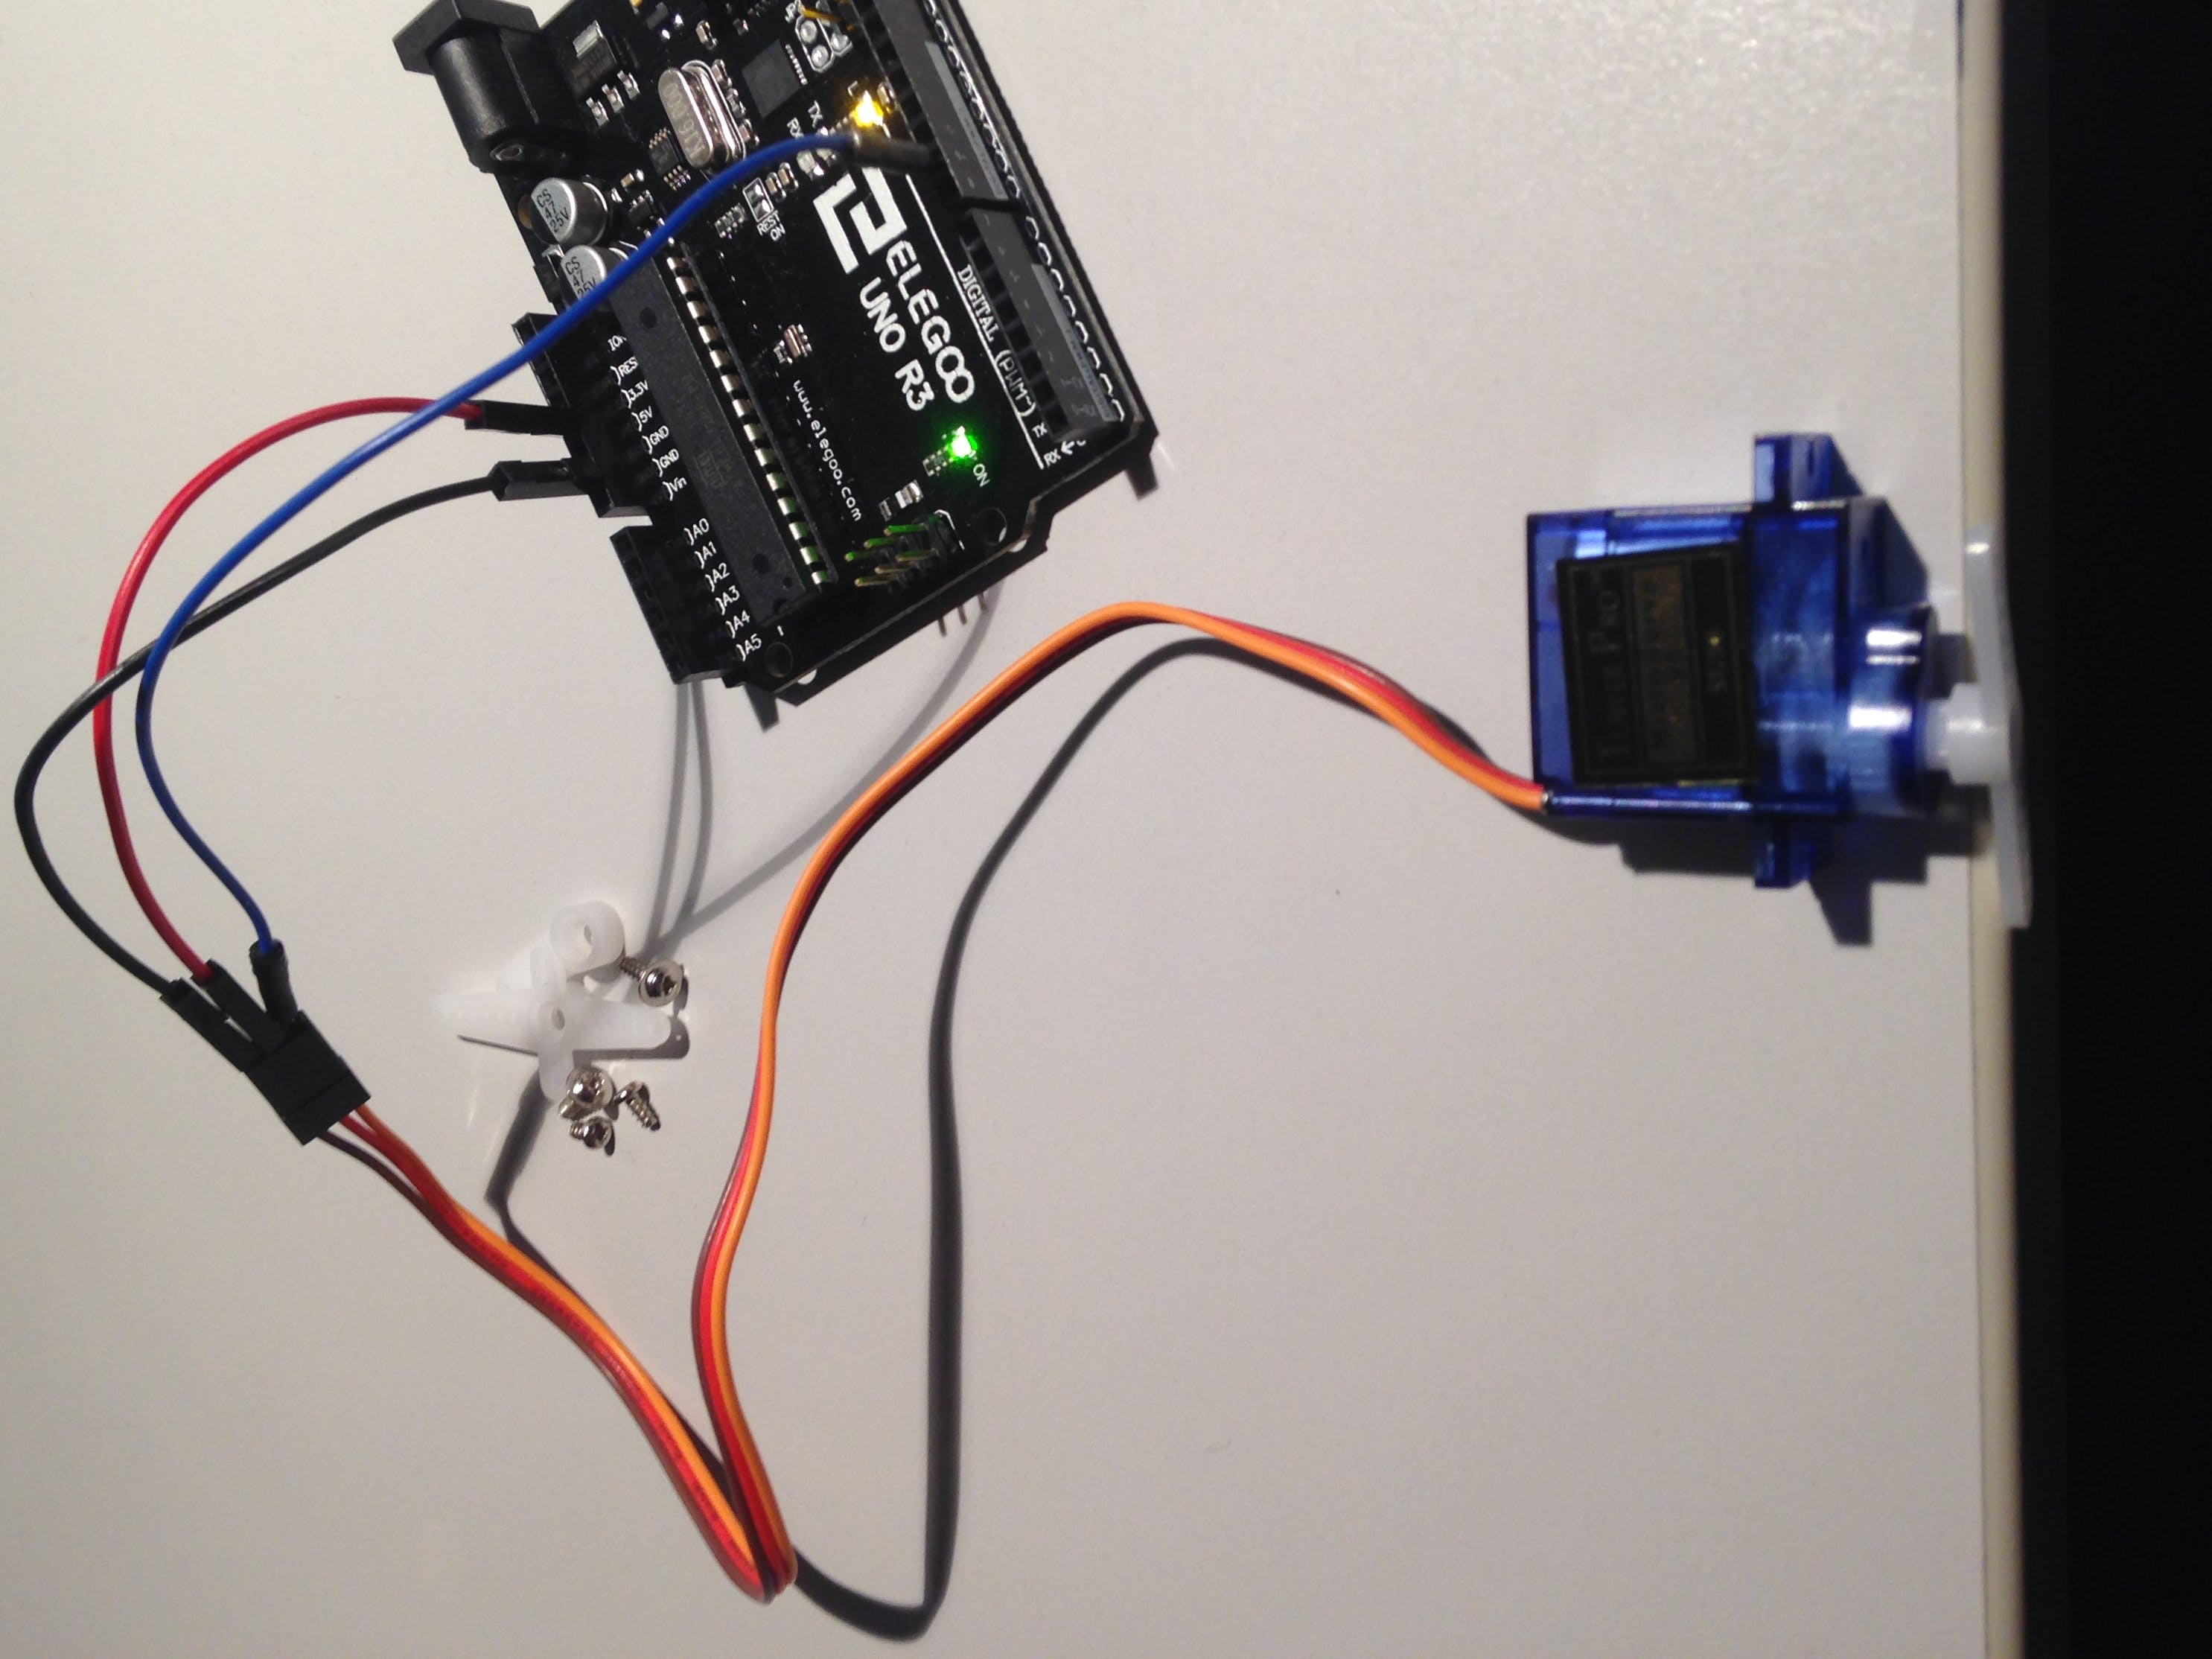 First Test: Super StarterKit From Elegoo - Servo-Motor